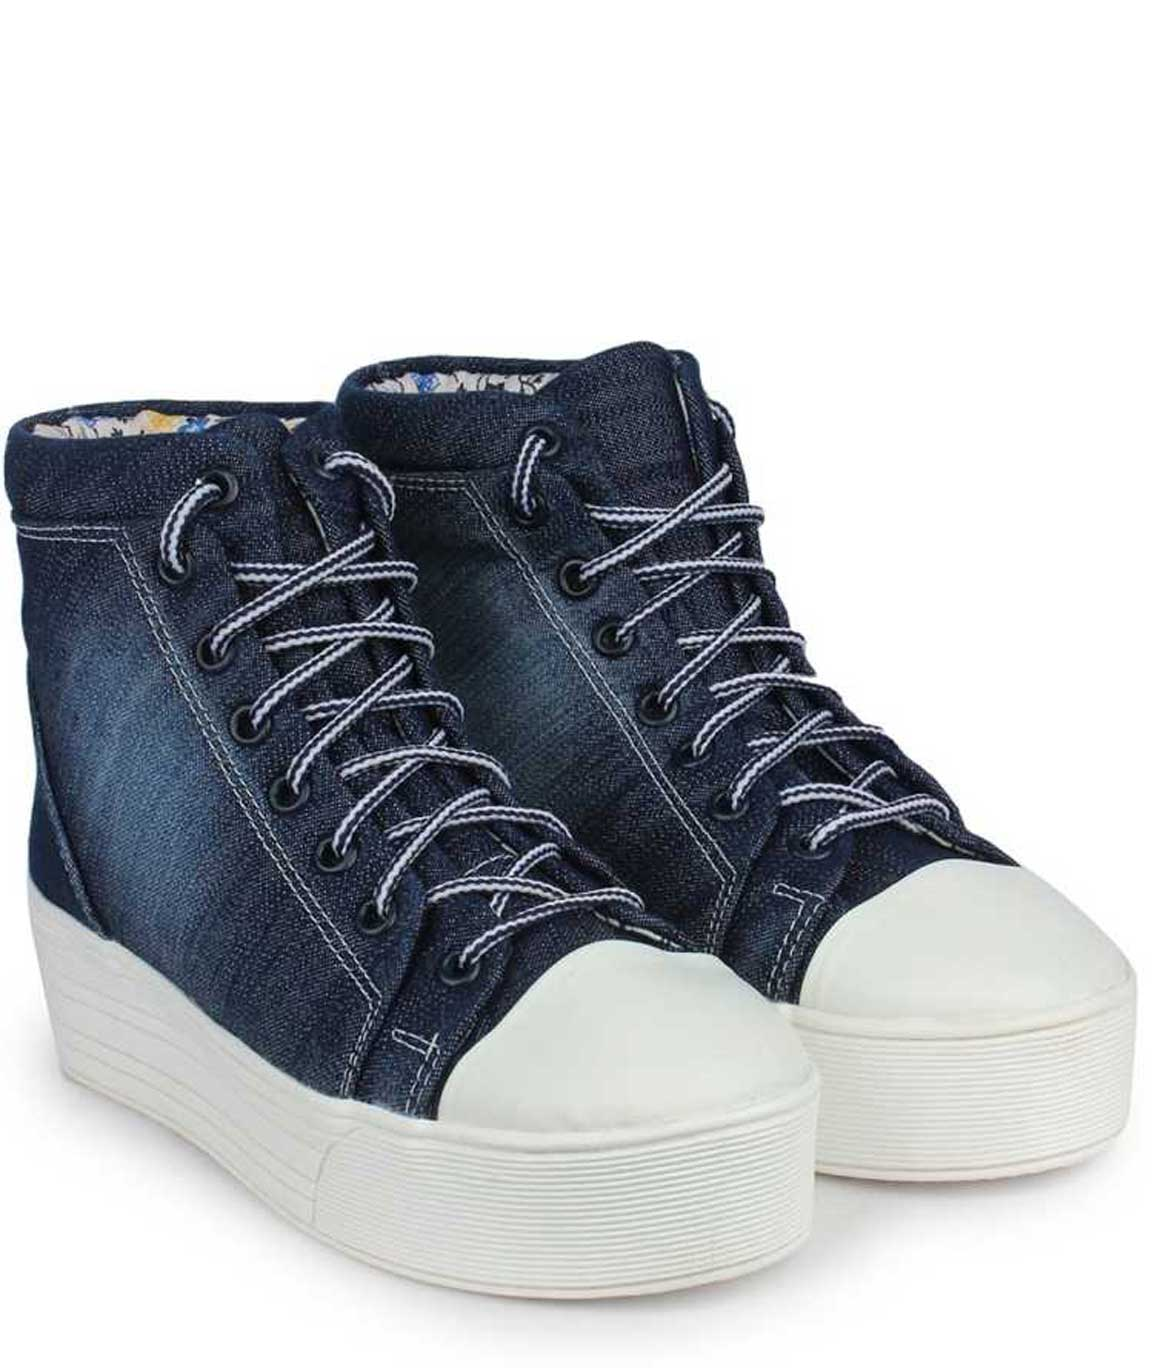 JEANS BOOT FOR WOMEN